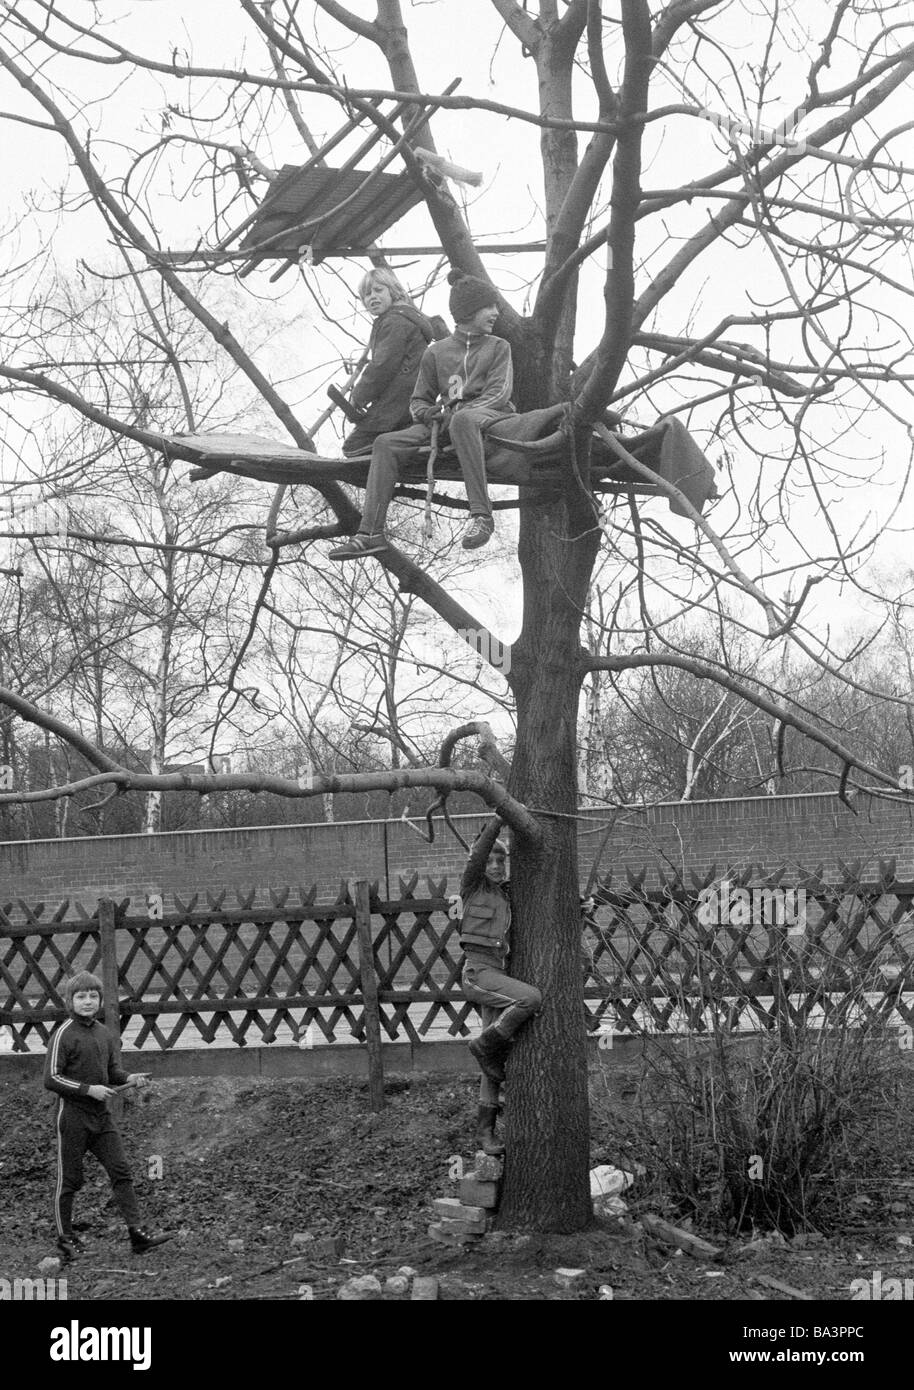 Seventies, black and white photo, people, children, four boys playing at a tree house, childrens playground, aged - Stock Image